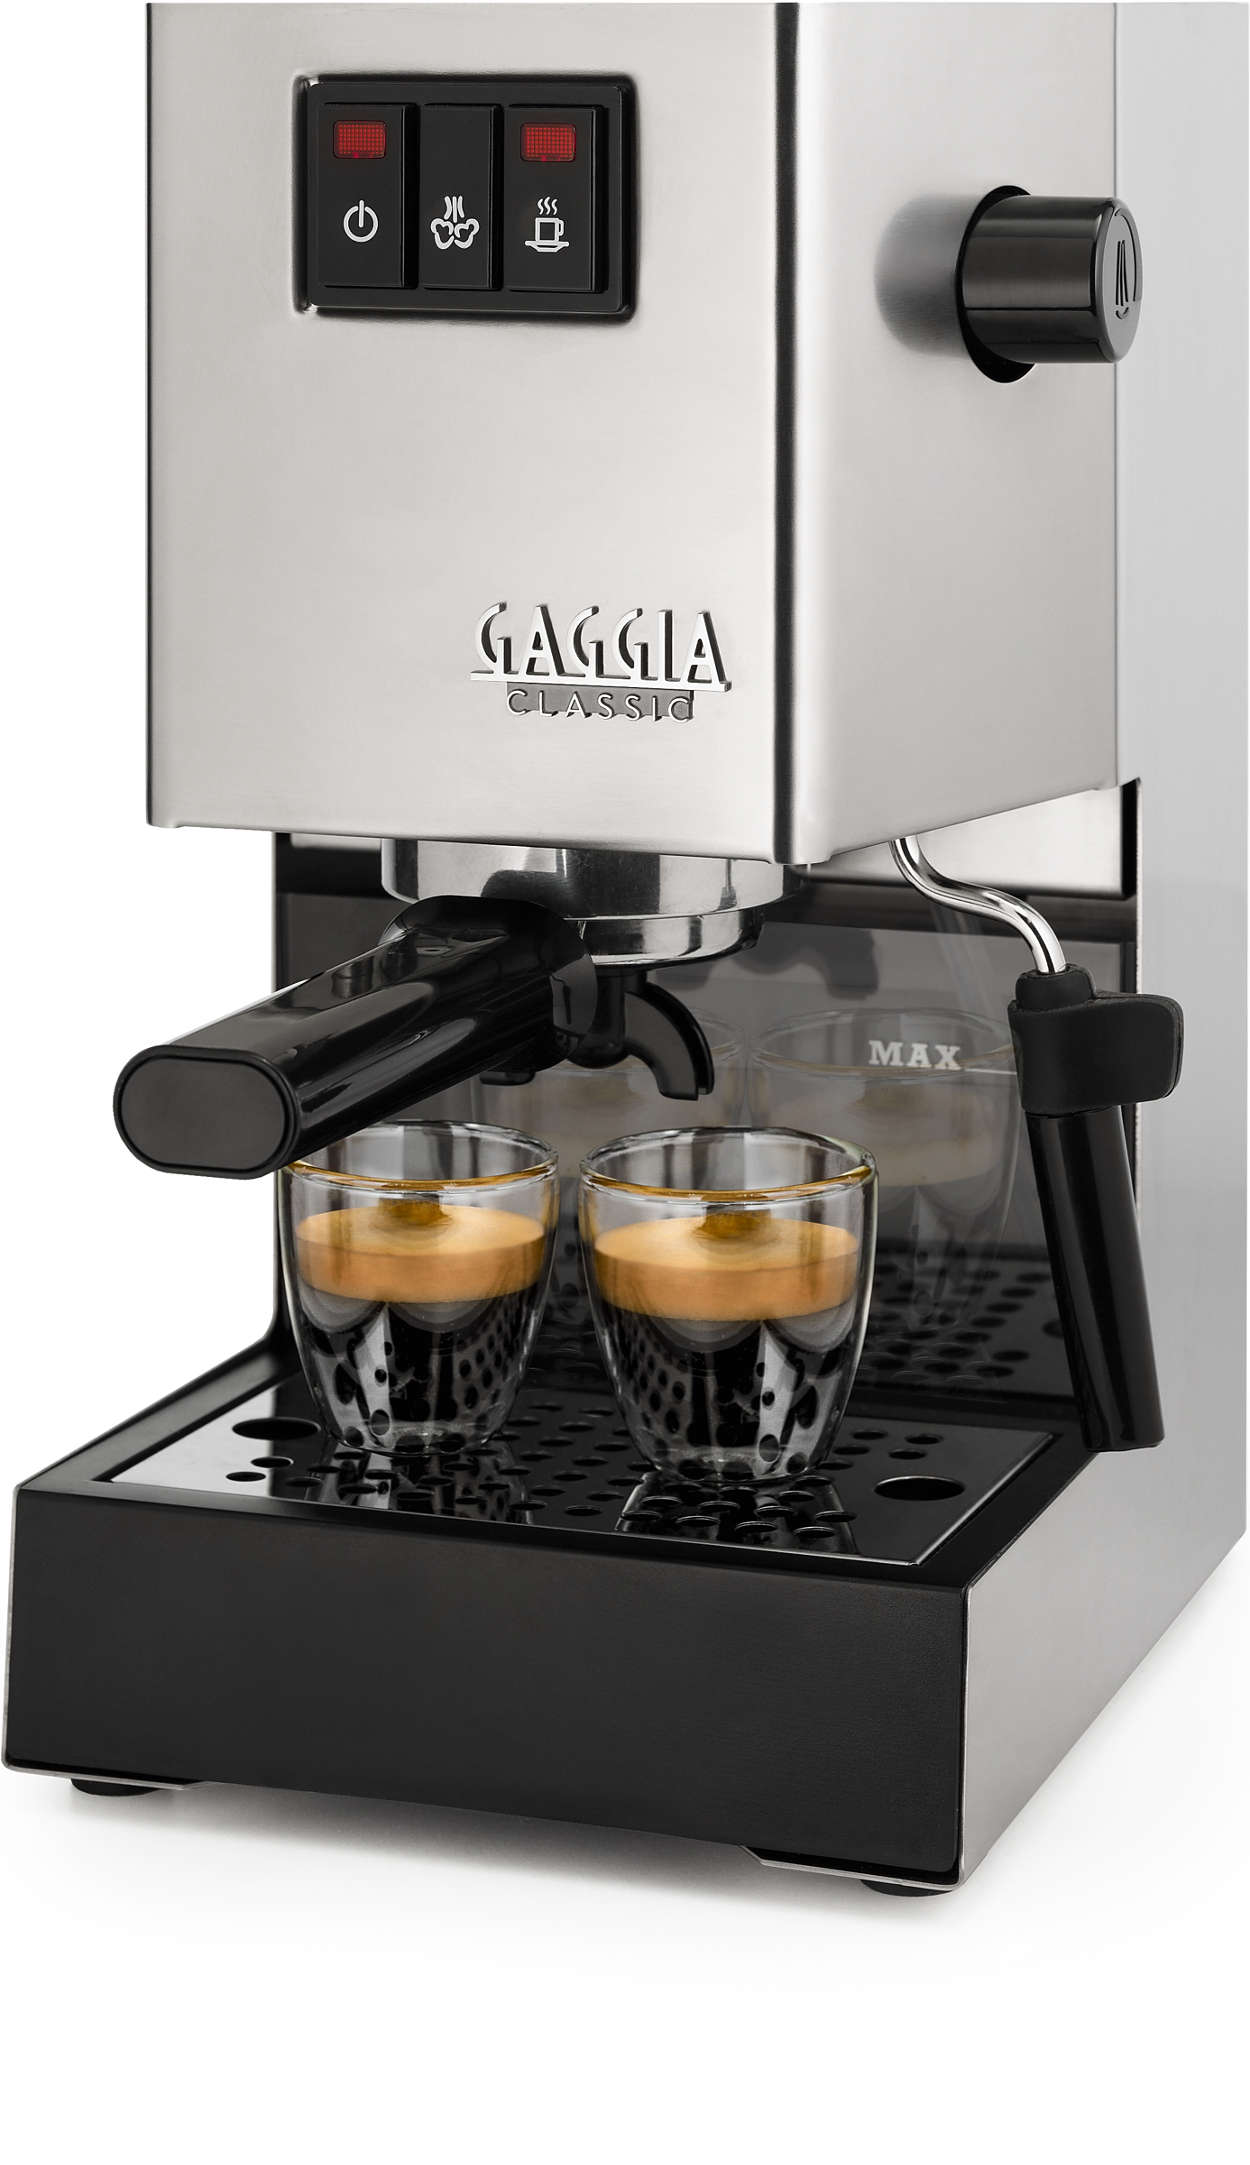 Authentique espresso italien